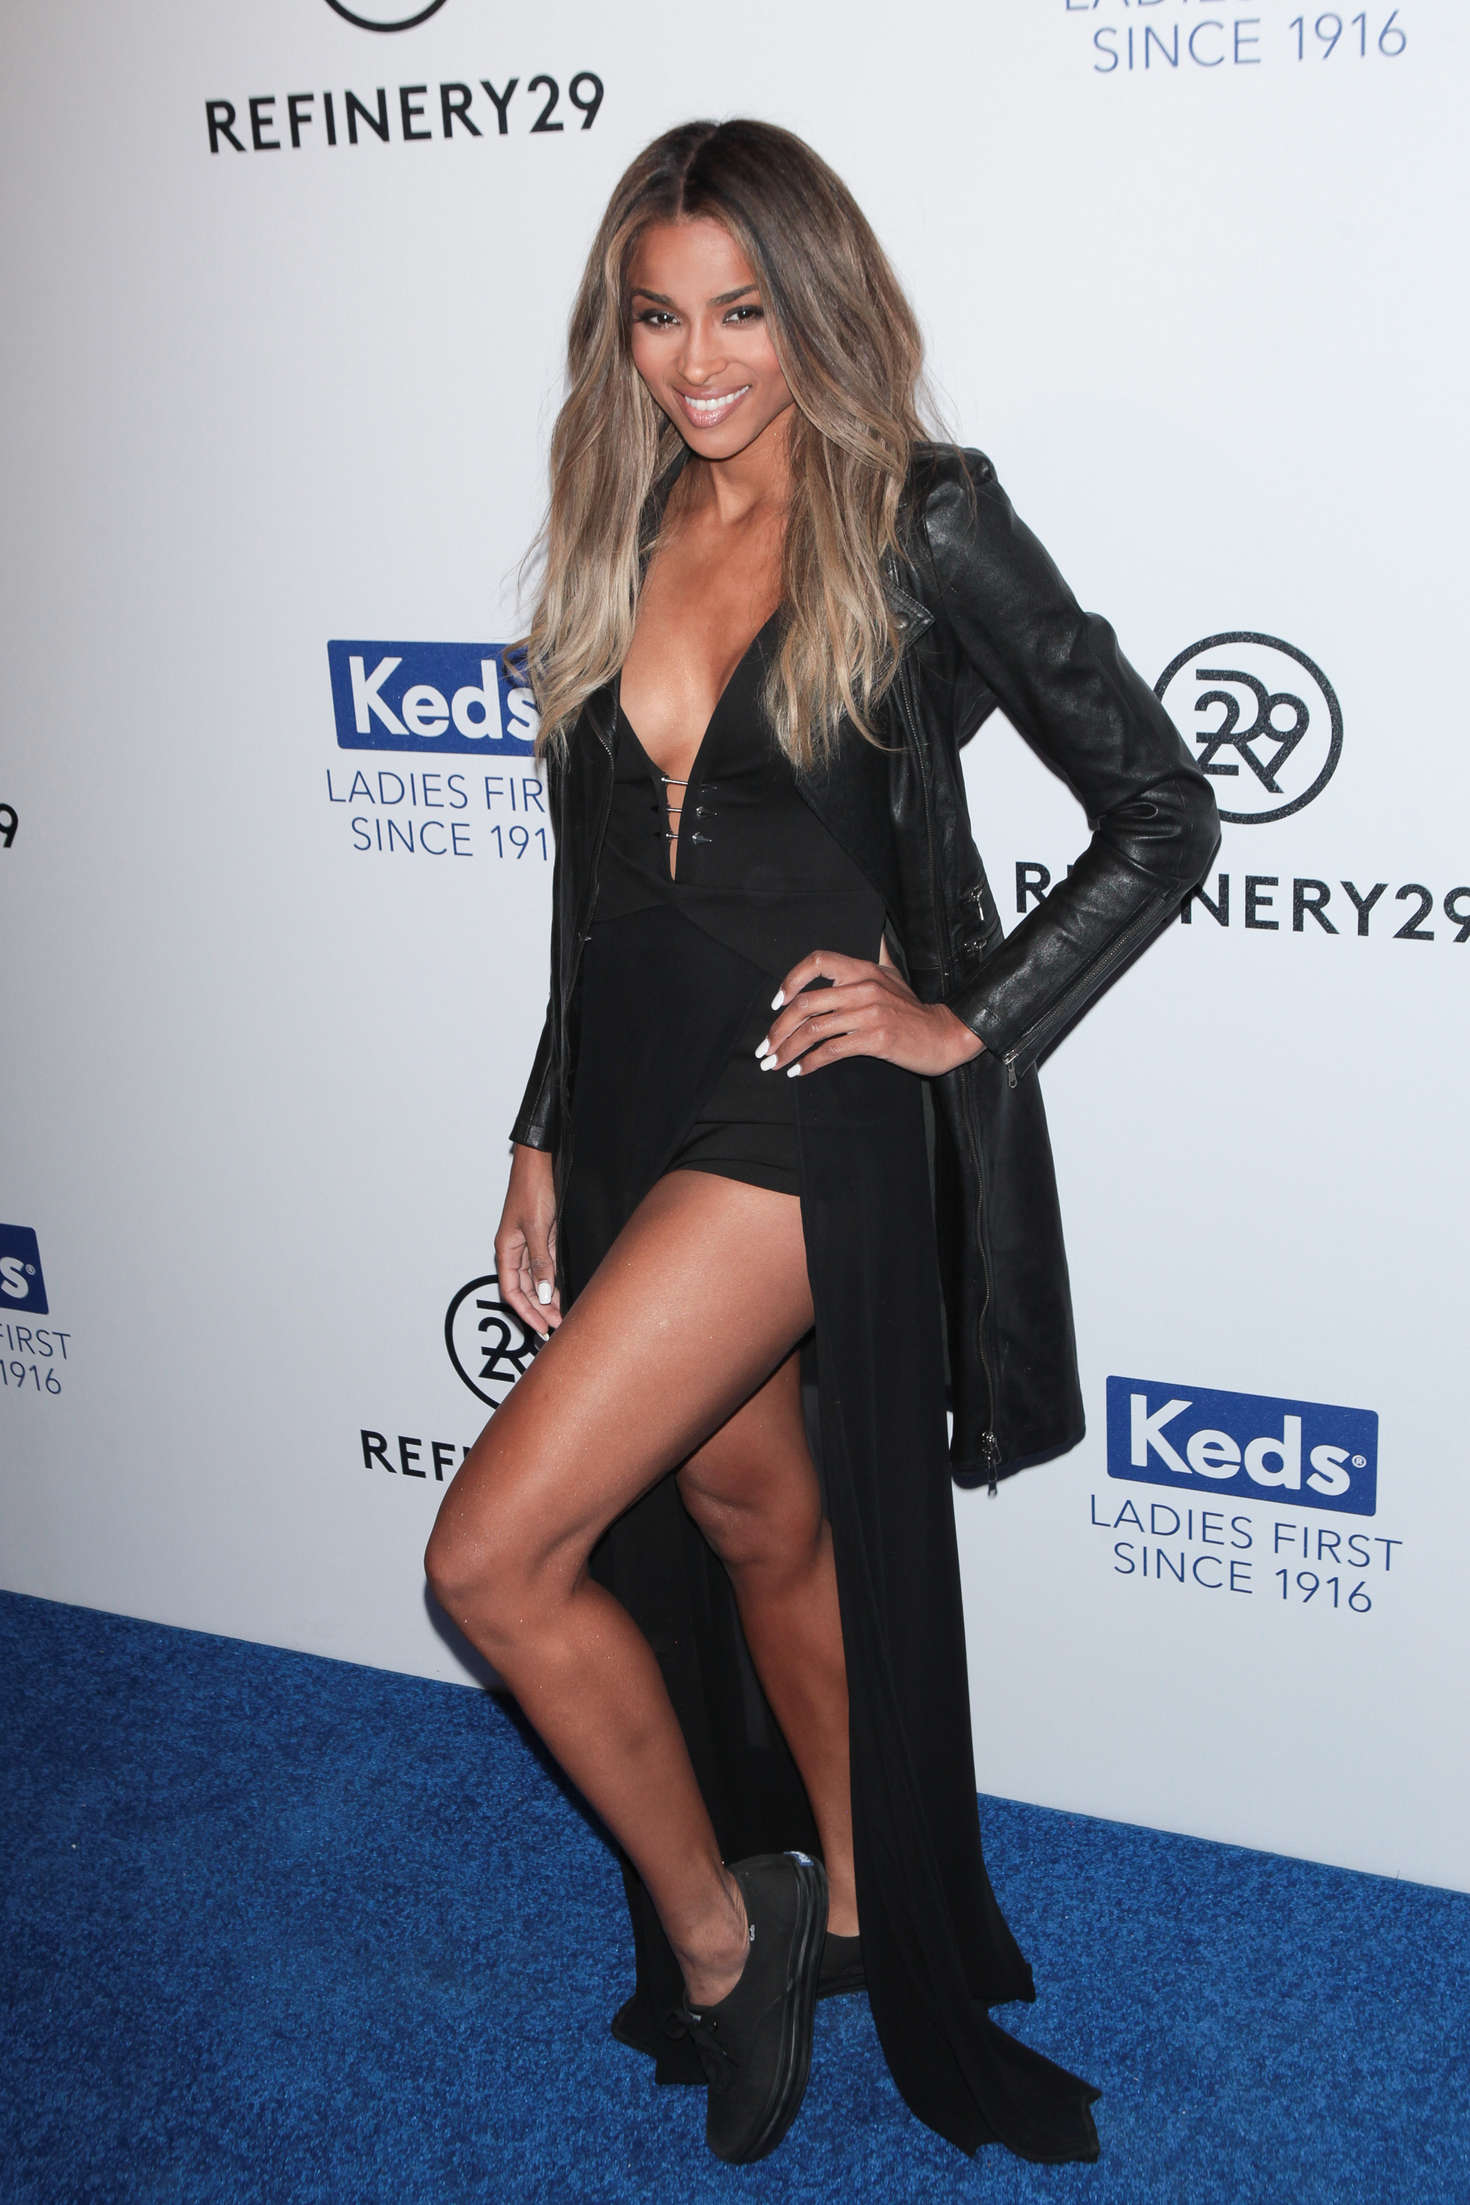 Ciara Keds Centennial Celebration at Studio in New York